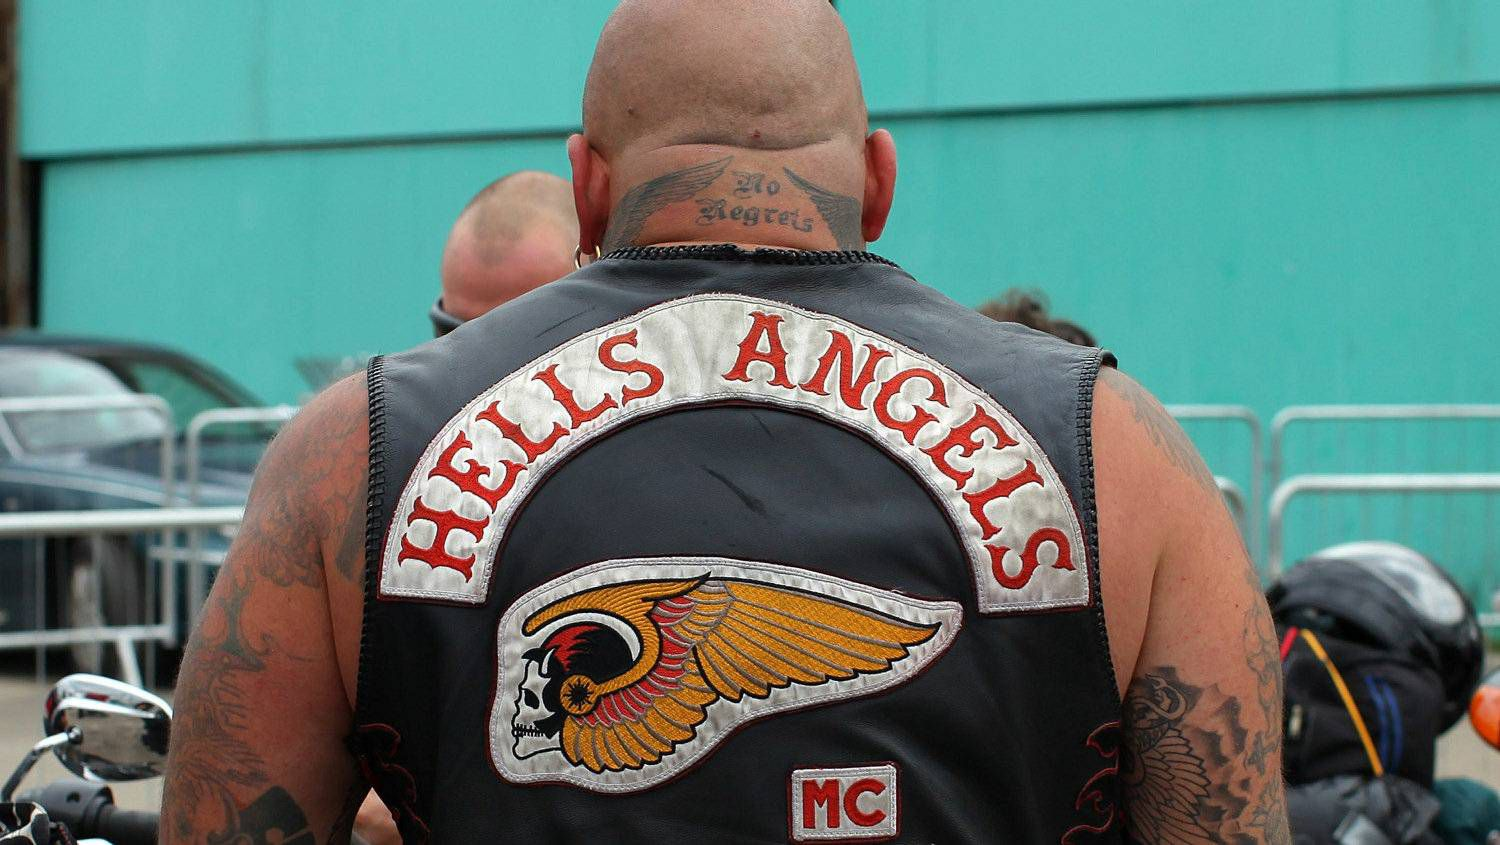 Court rules Hells Angel not entitled to stay in Canada - The Globe